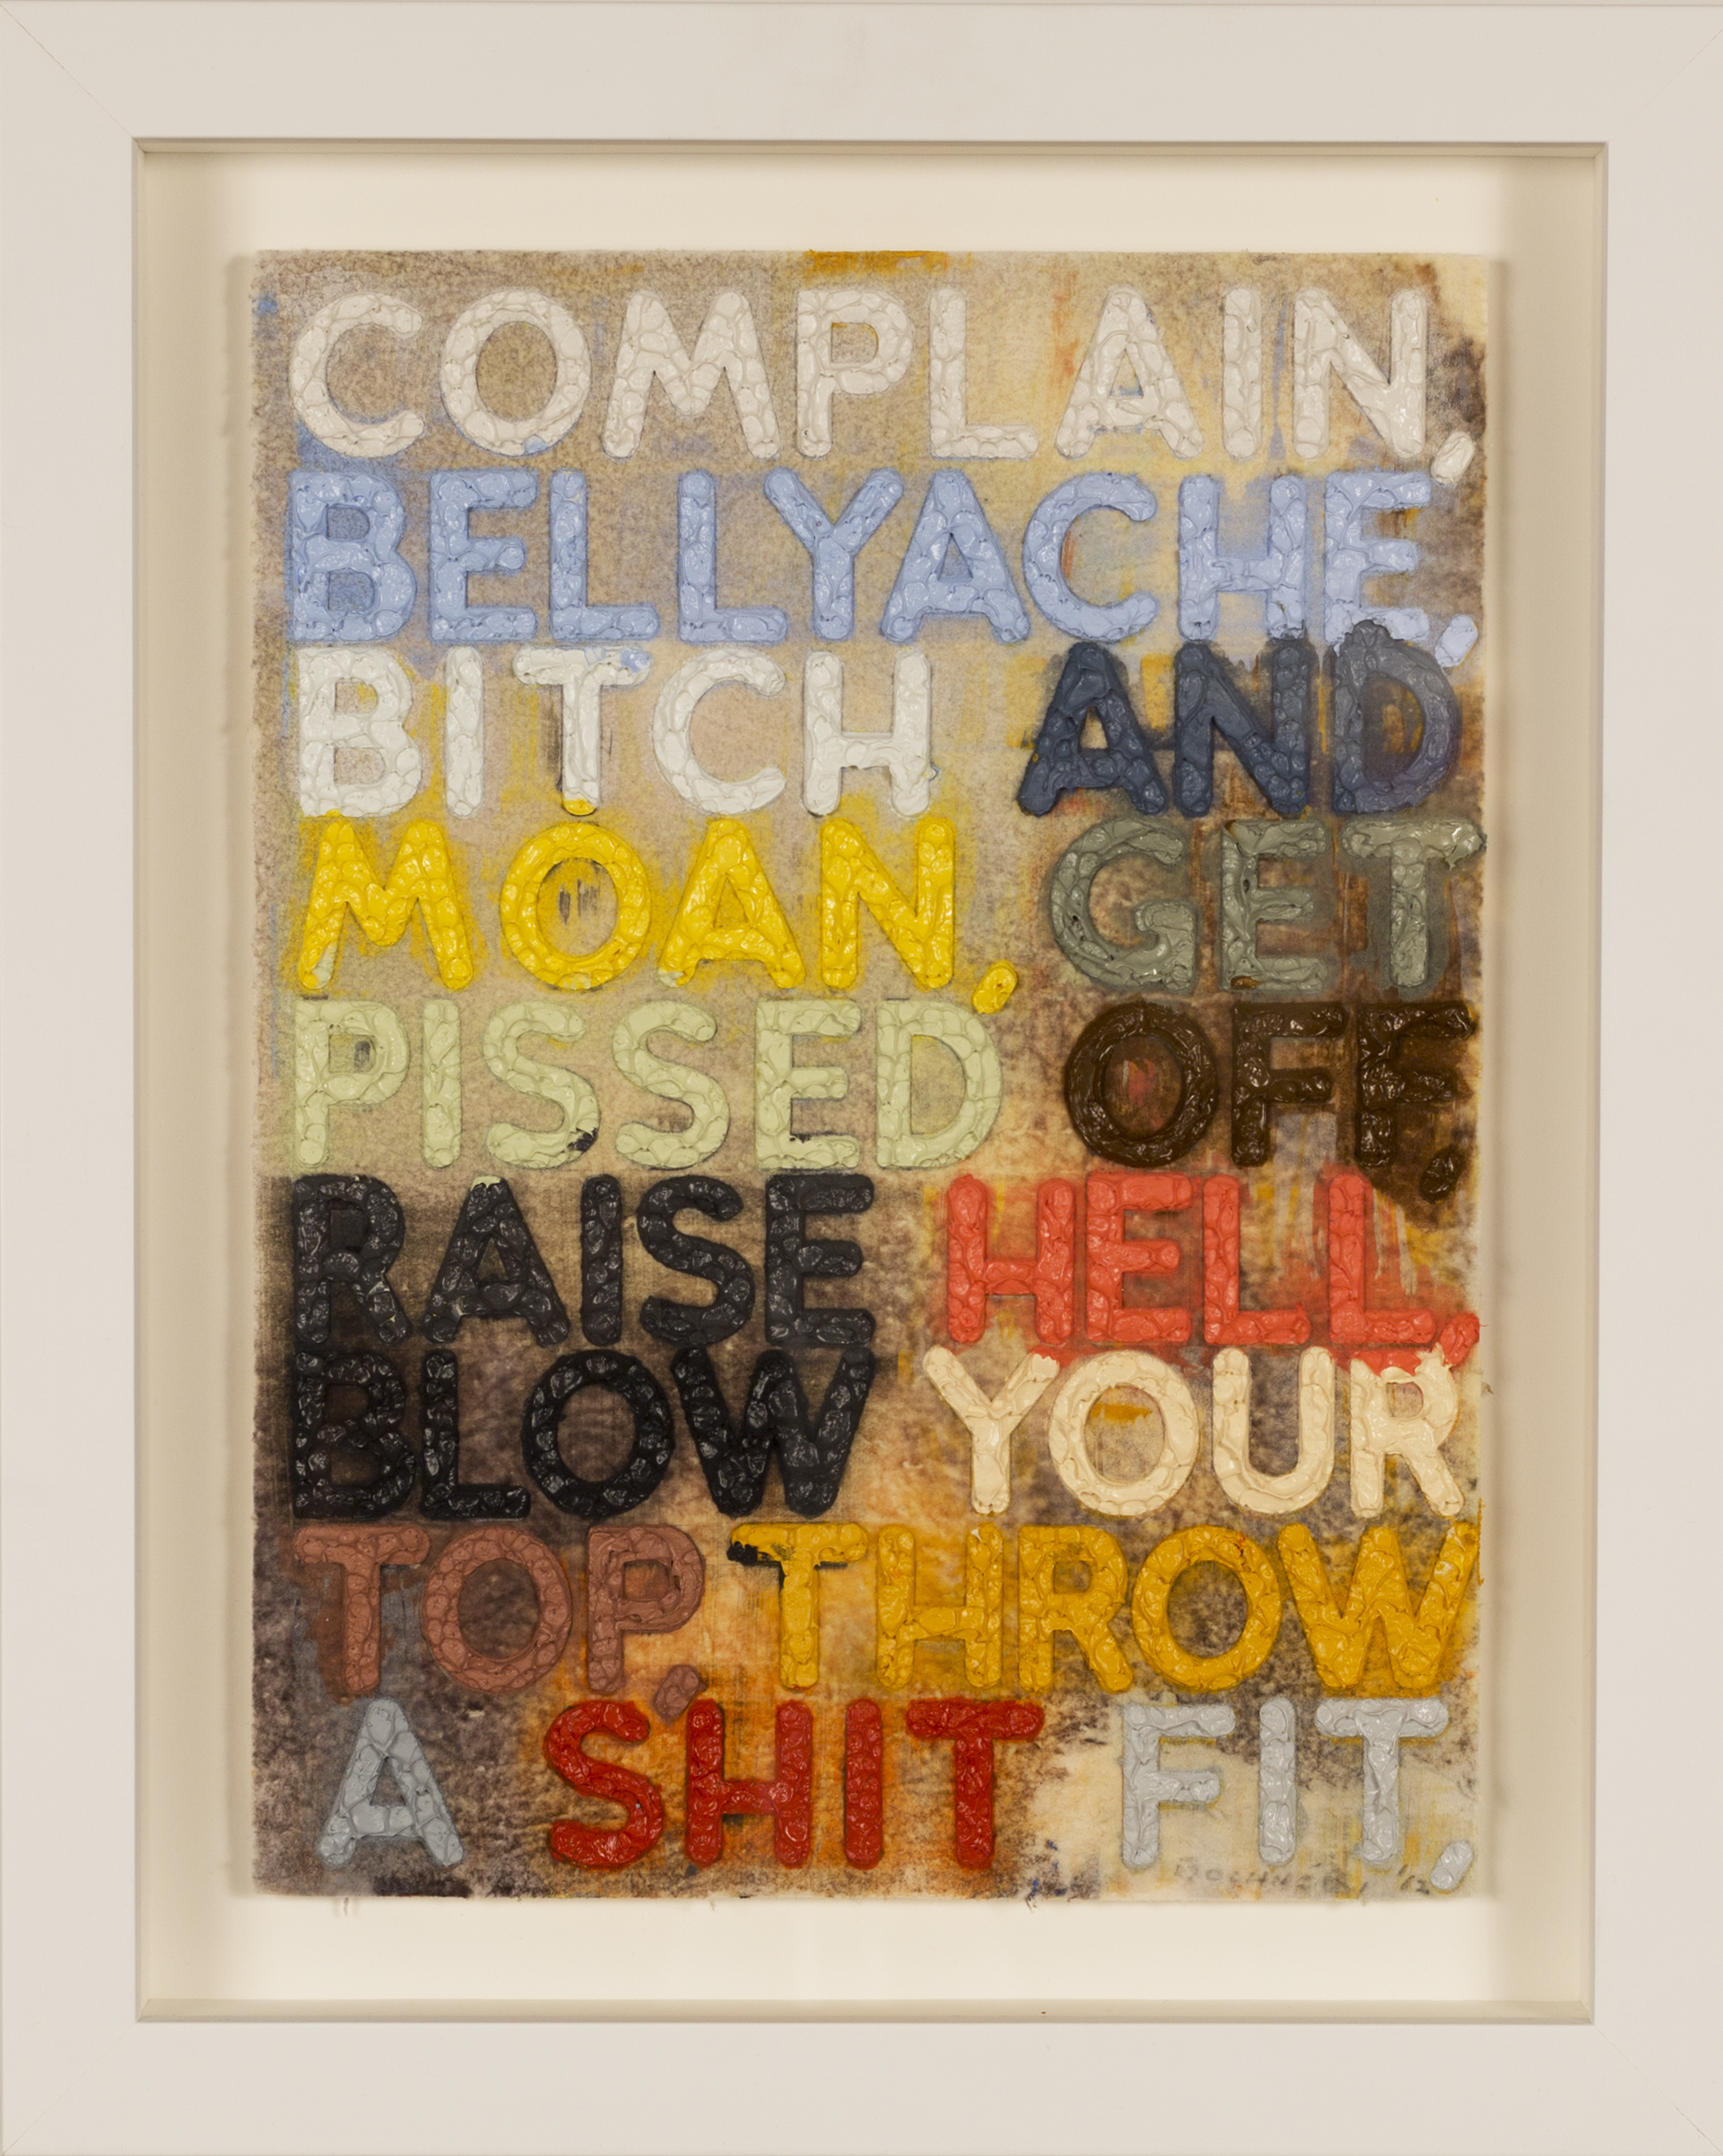 Complain,   Monoprint with collage, engraving, and embossment on hand-dyed paper, 2012, 12 x 9 inches